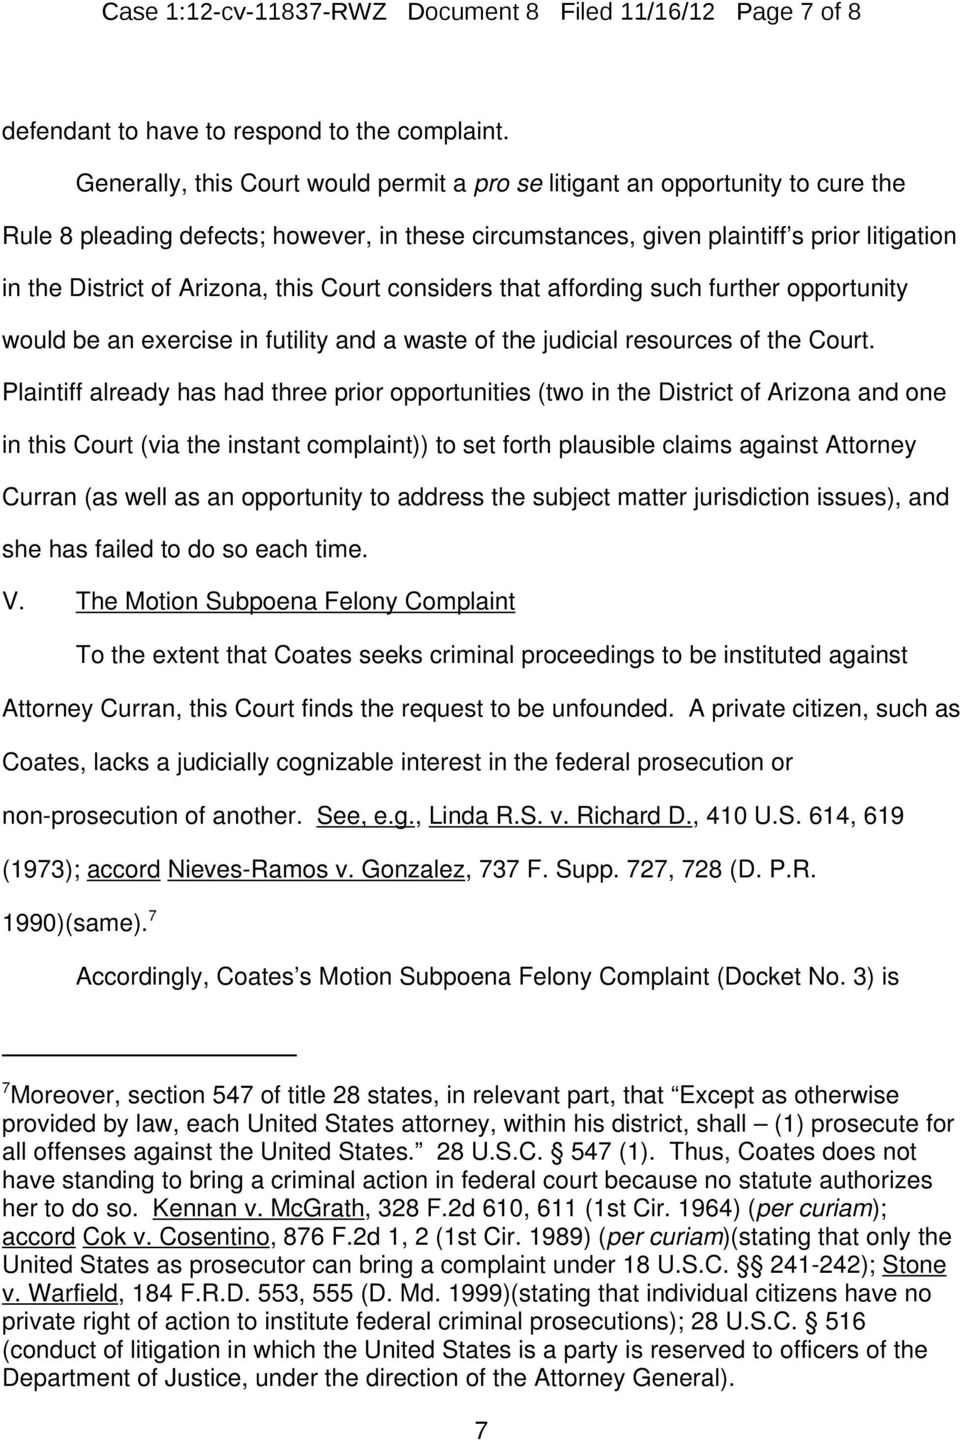 Arizona, this Court considers that affording such further opportunity would be an exercise in futility and a waste of the judicial resources of the Court.